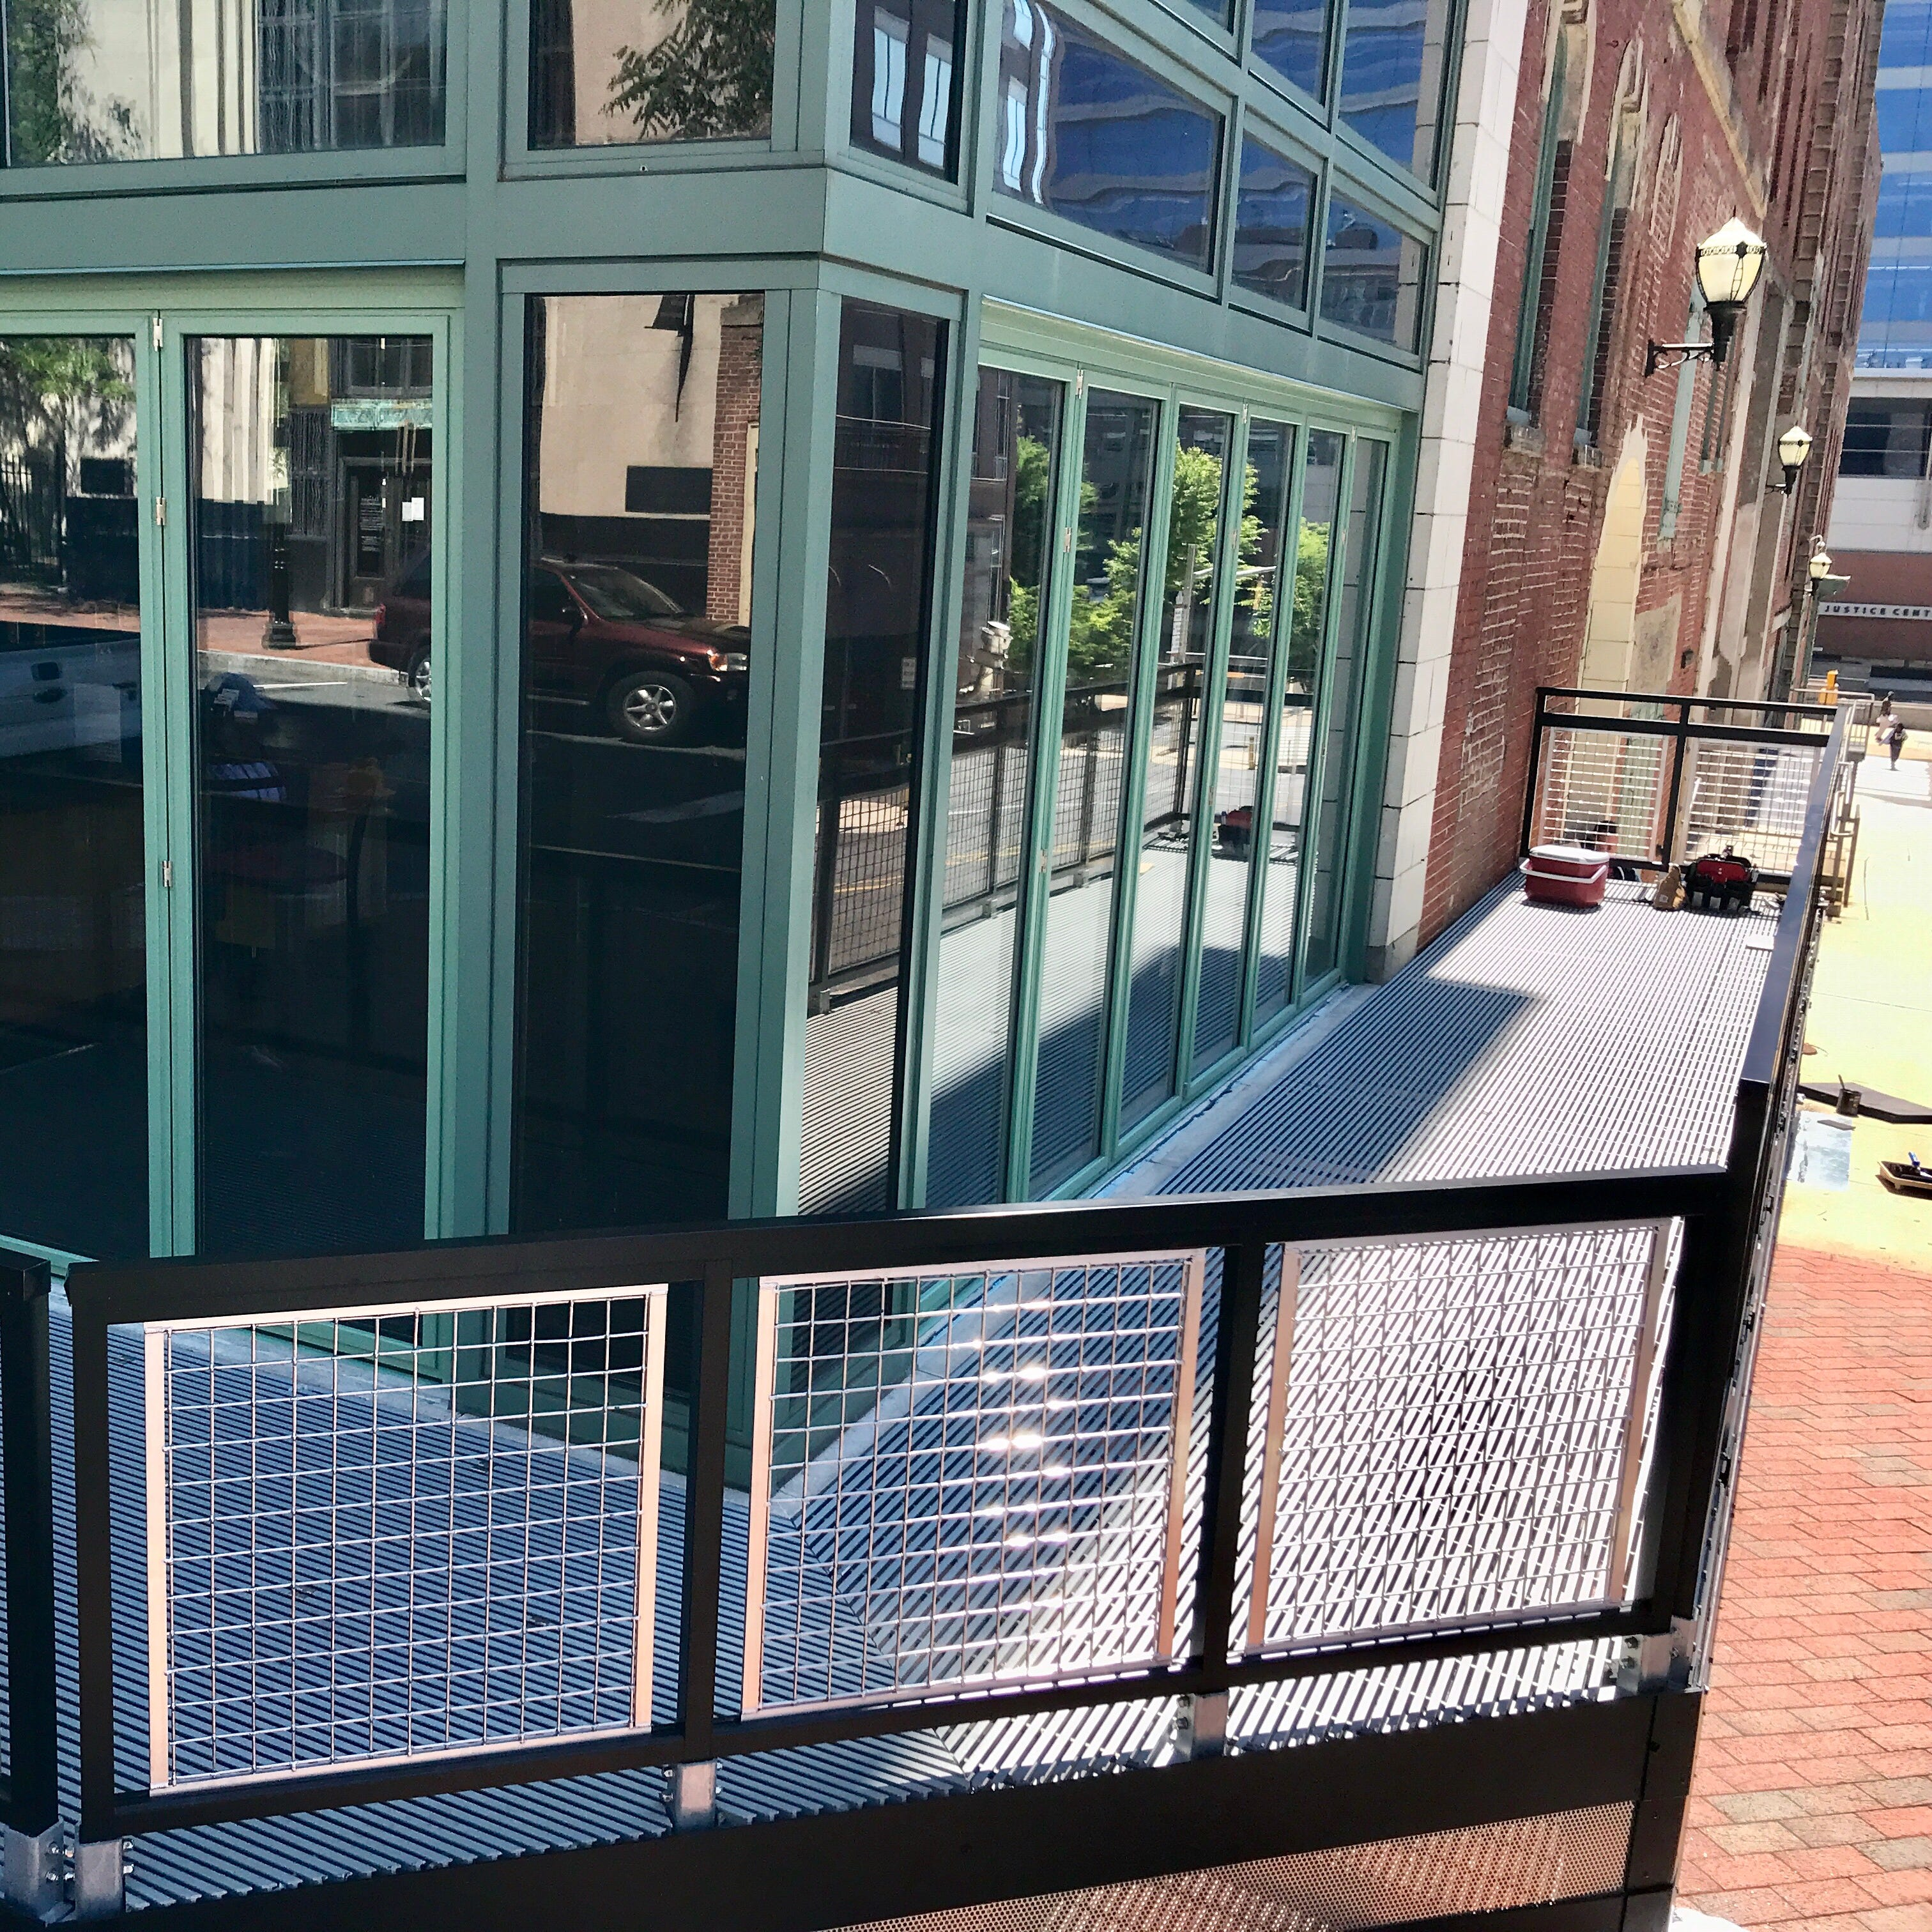 The Queen adds open-air corner bar with retractable windows; patio also coming to Wilmington's Merchant Bar